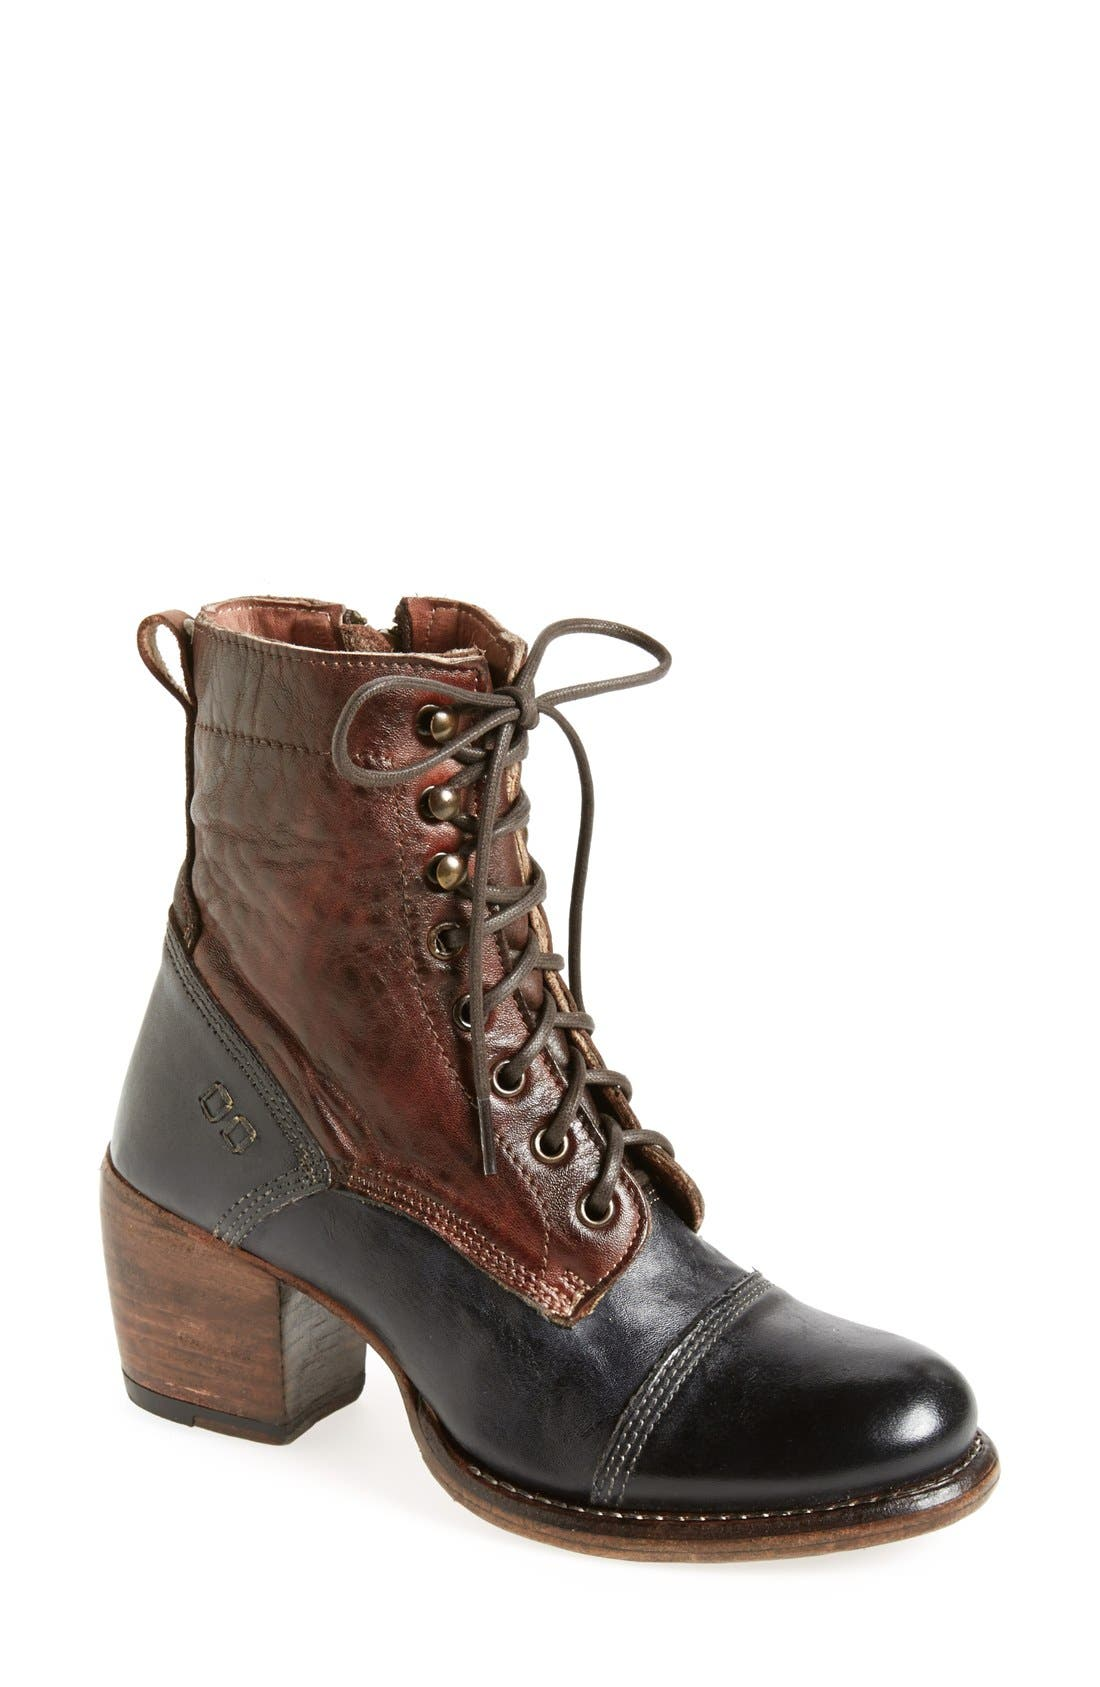 Alternate Image 1 Selected - Bed Stu 'Oath' Two-Tone Cap Toe Boot (Women)